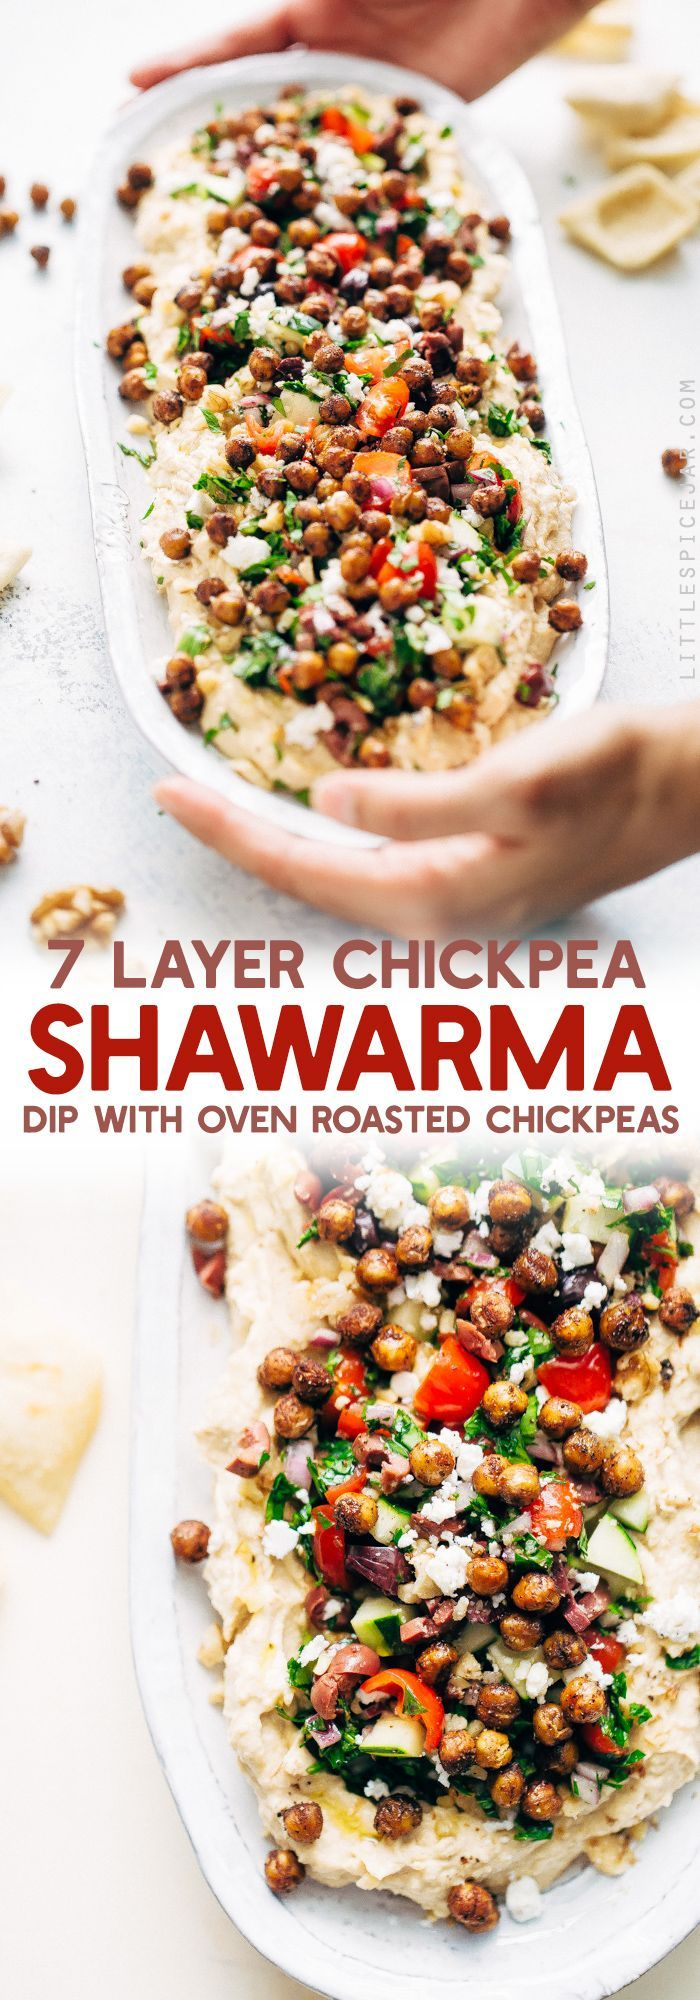 Seven Layer Chickpea Shawarma Dip - Smooth hummus topped with a parsley salad, salty feta, crunchy roasted chickpeas, and so much more! #7layerdip #sevenlayerdip #shawarma #shawarmadip #roastedchickpeas #sponsored by @californiawalnuts | Litttlespicejar.com